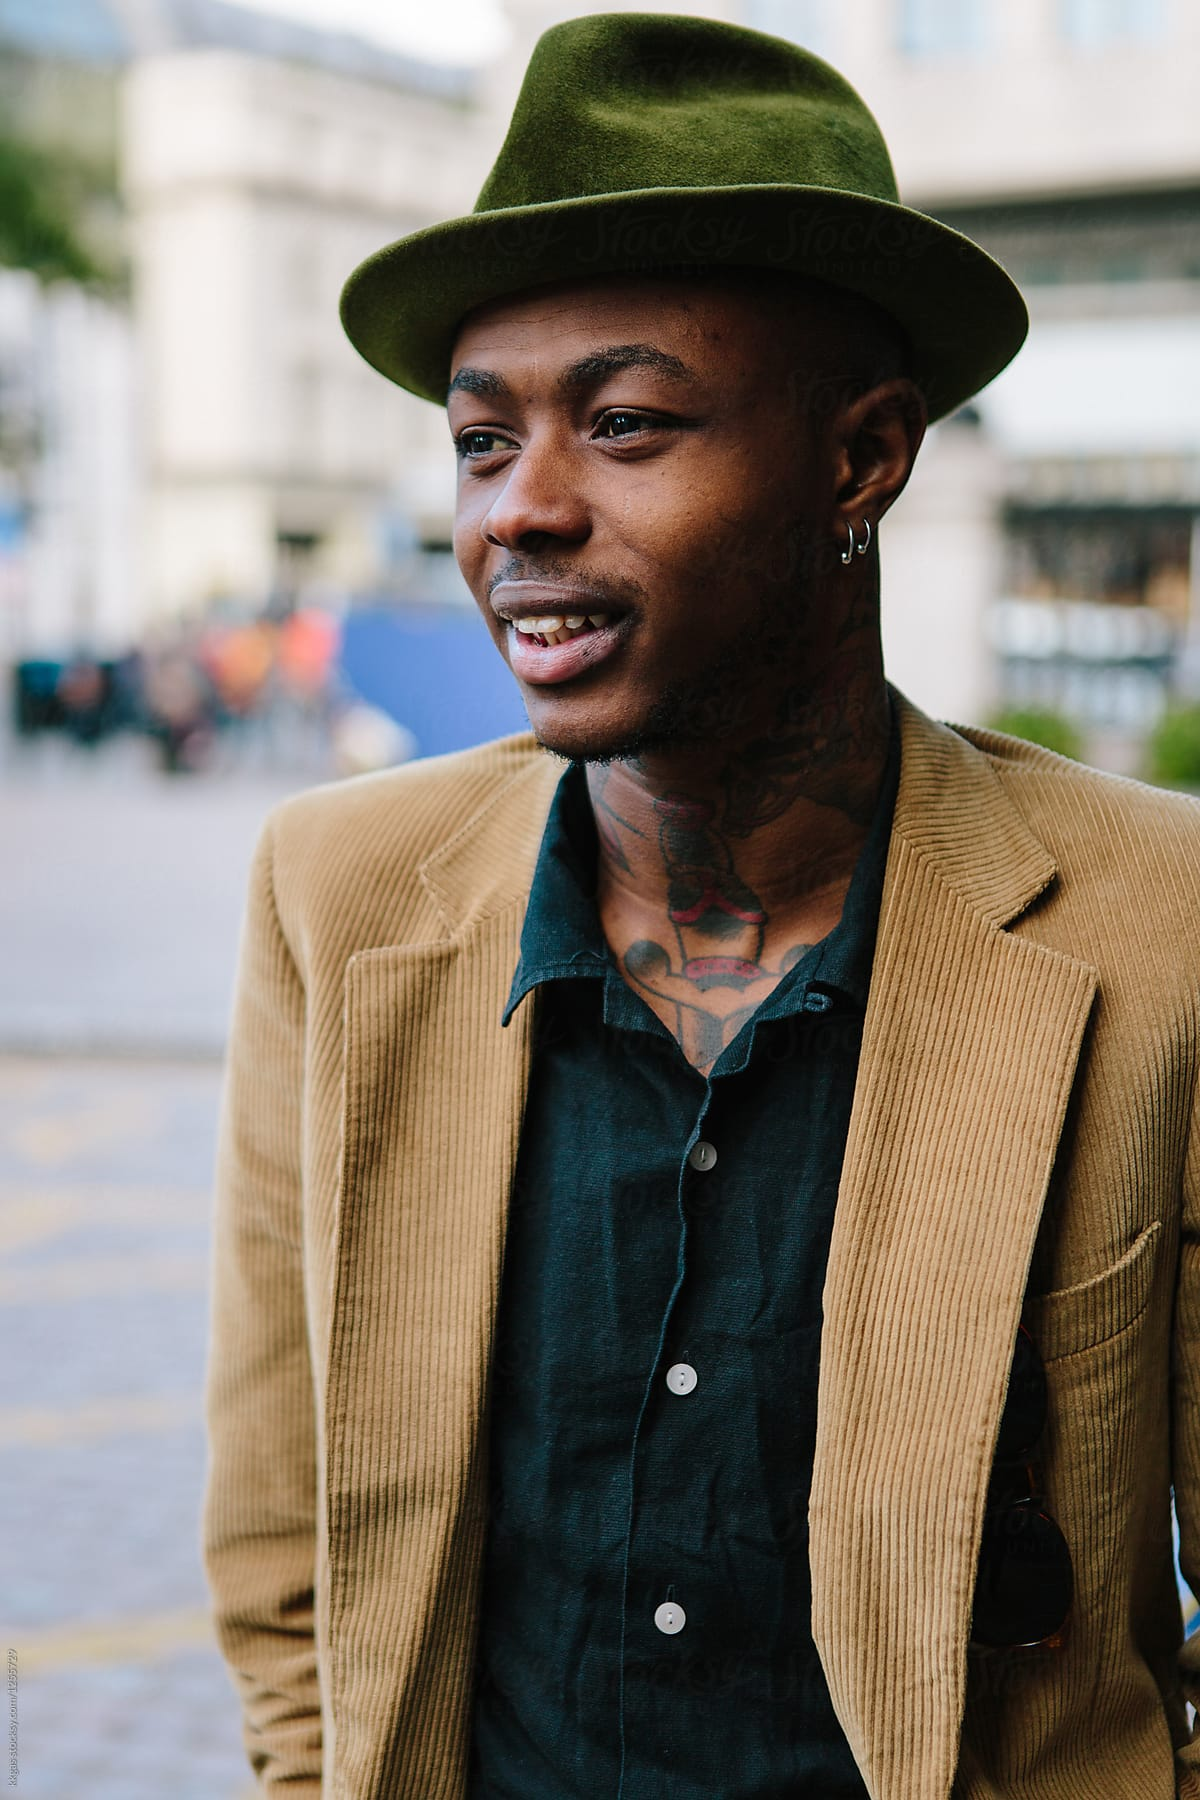 da39f93e35872 Stylish Young Black Man With Tattoos And Hat